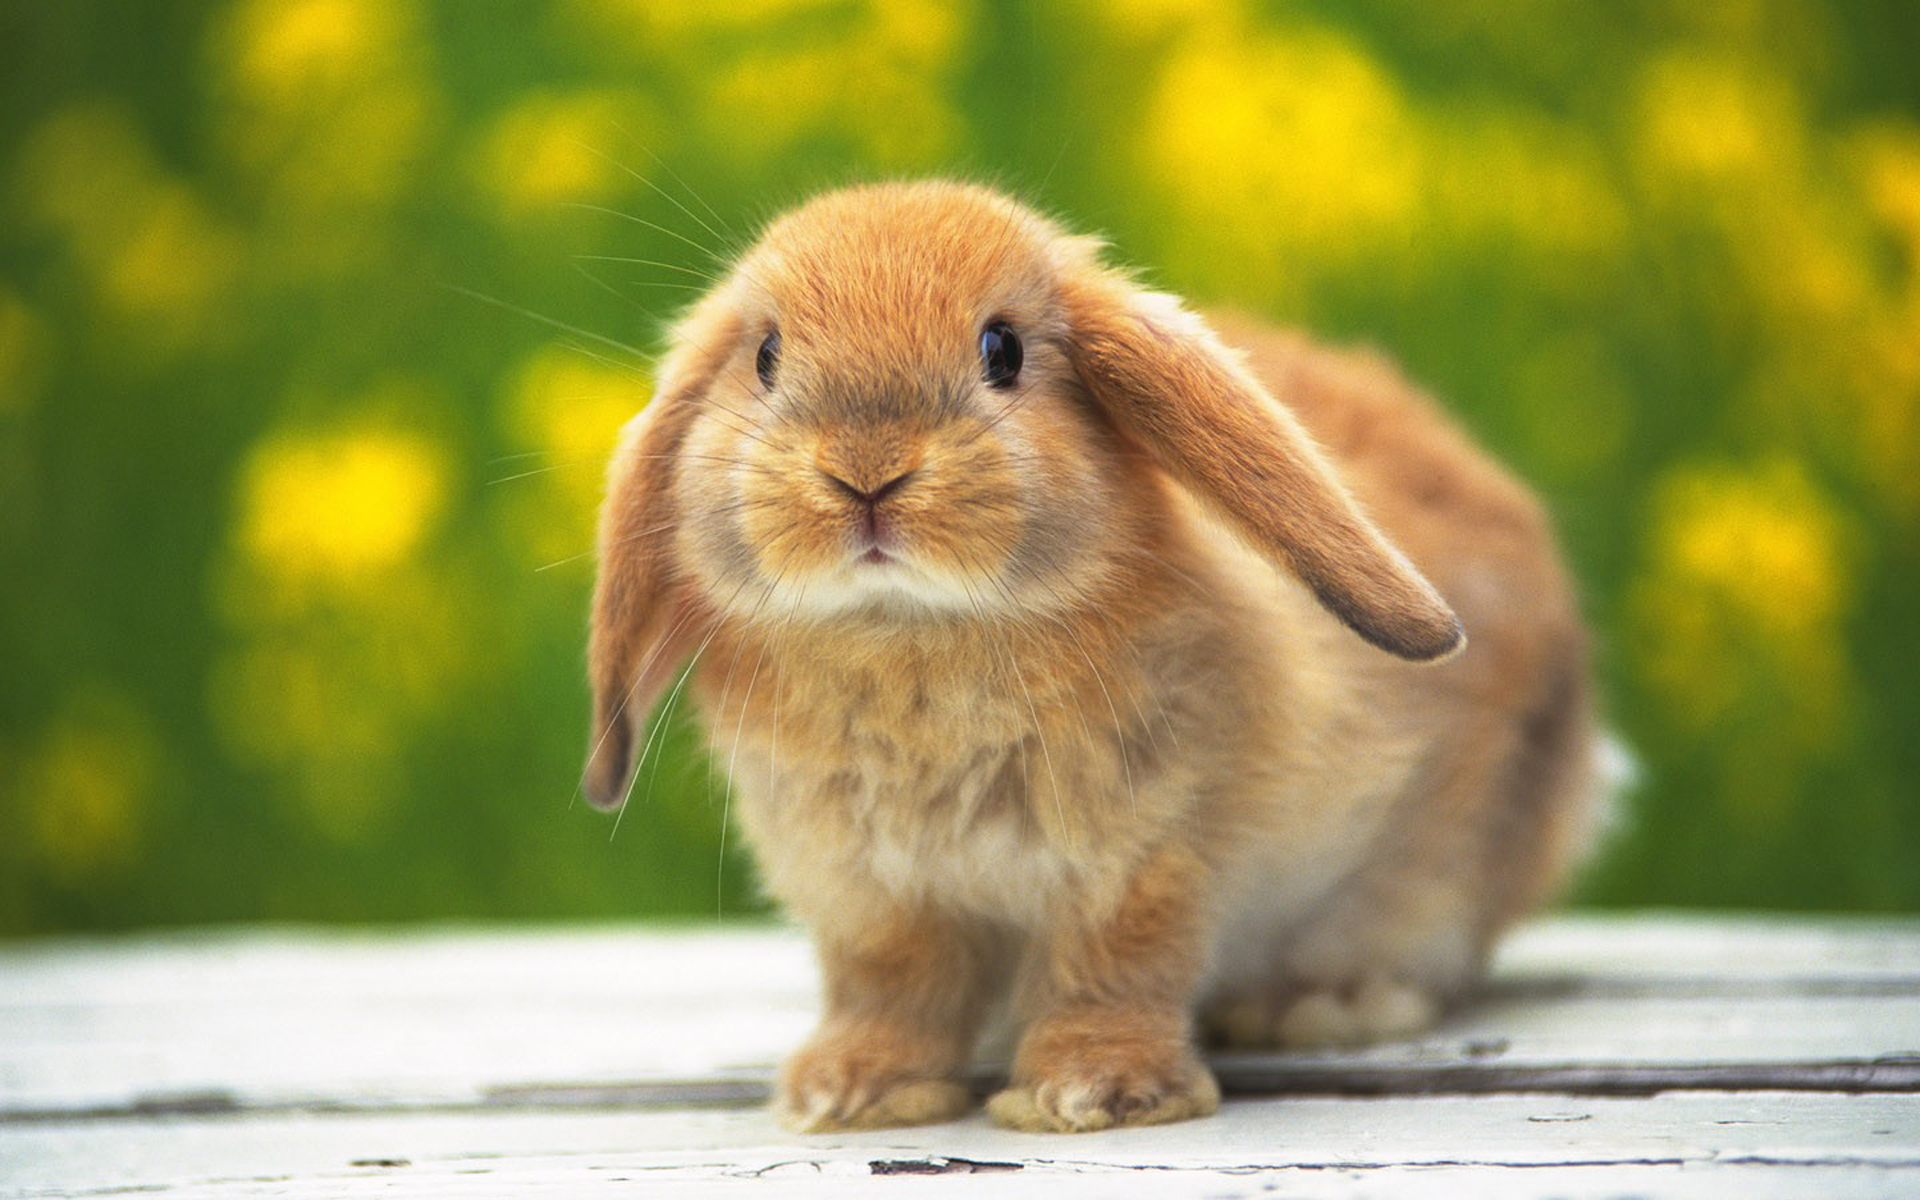 22386 download wallpaper Animals, Rabbits screensavers and pictures for free